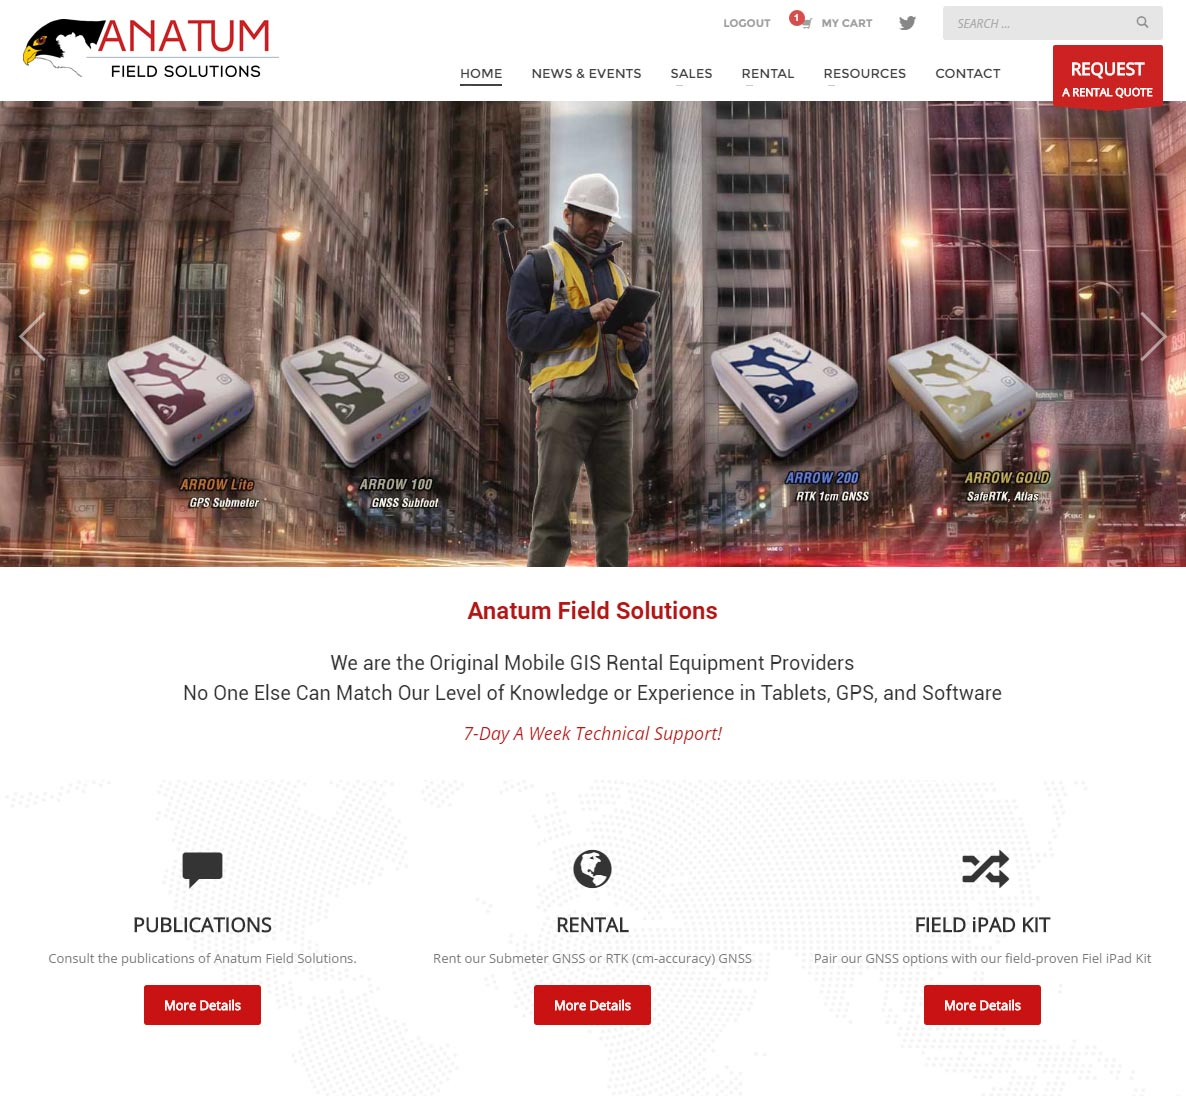 anatum-field-solutions-website-bp